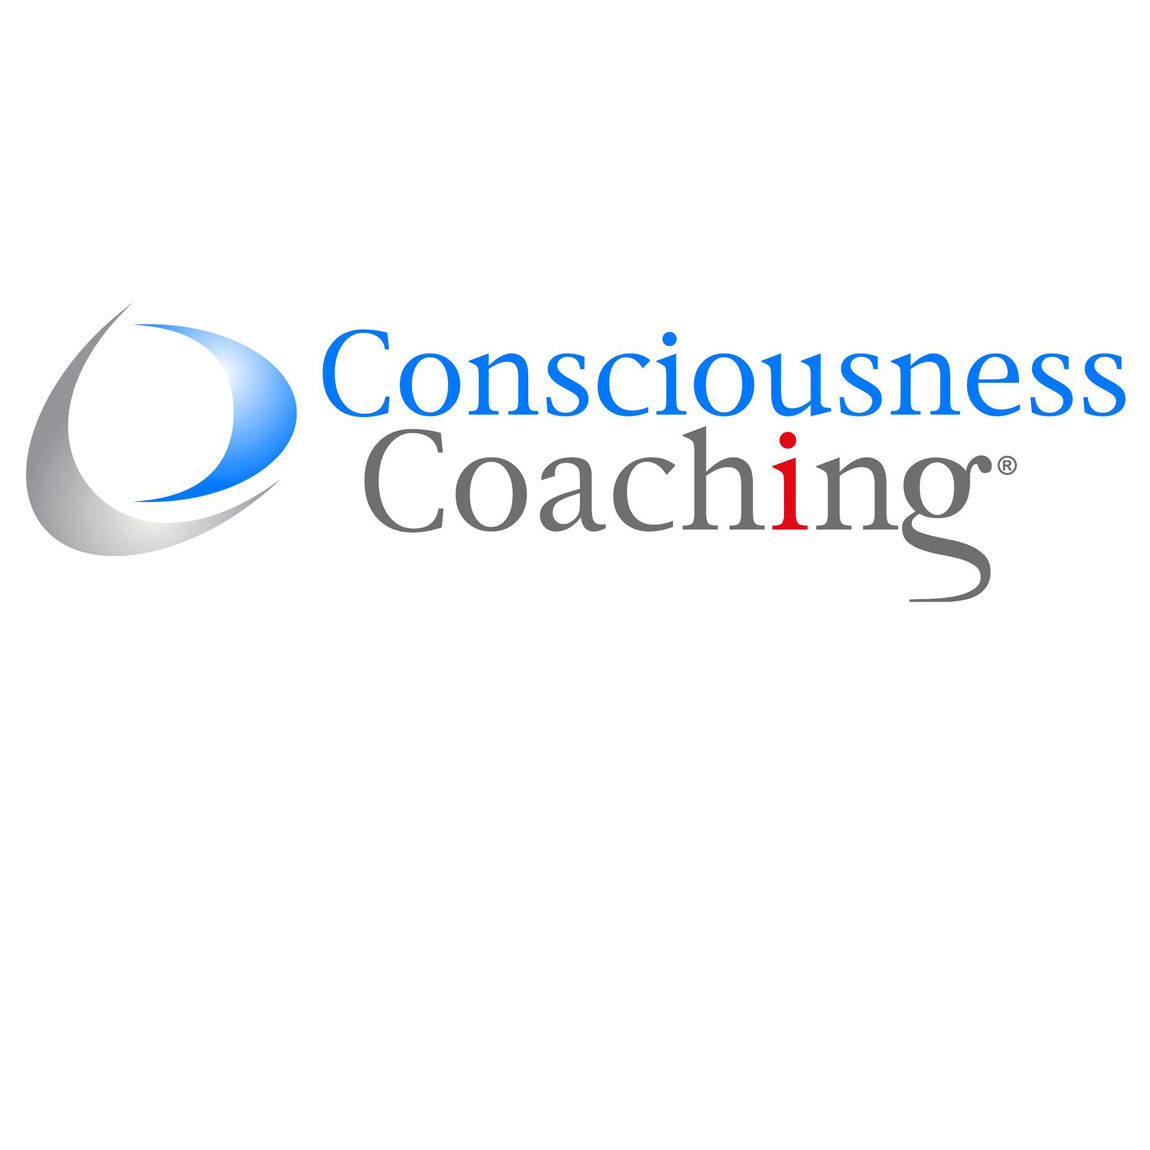 ConsciousnessCoaching